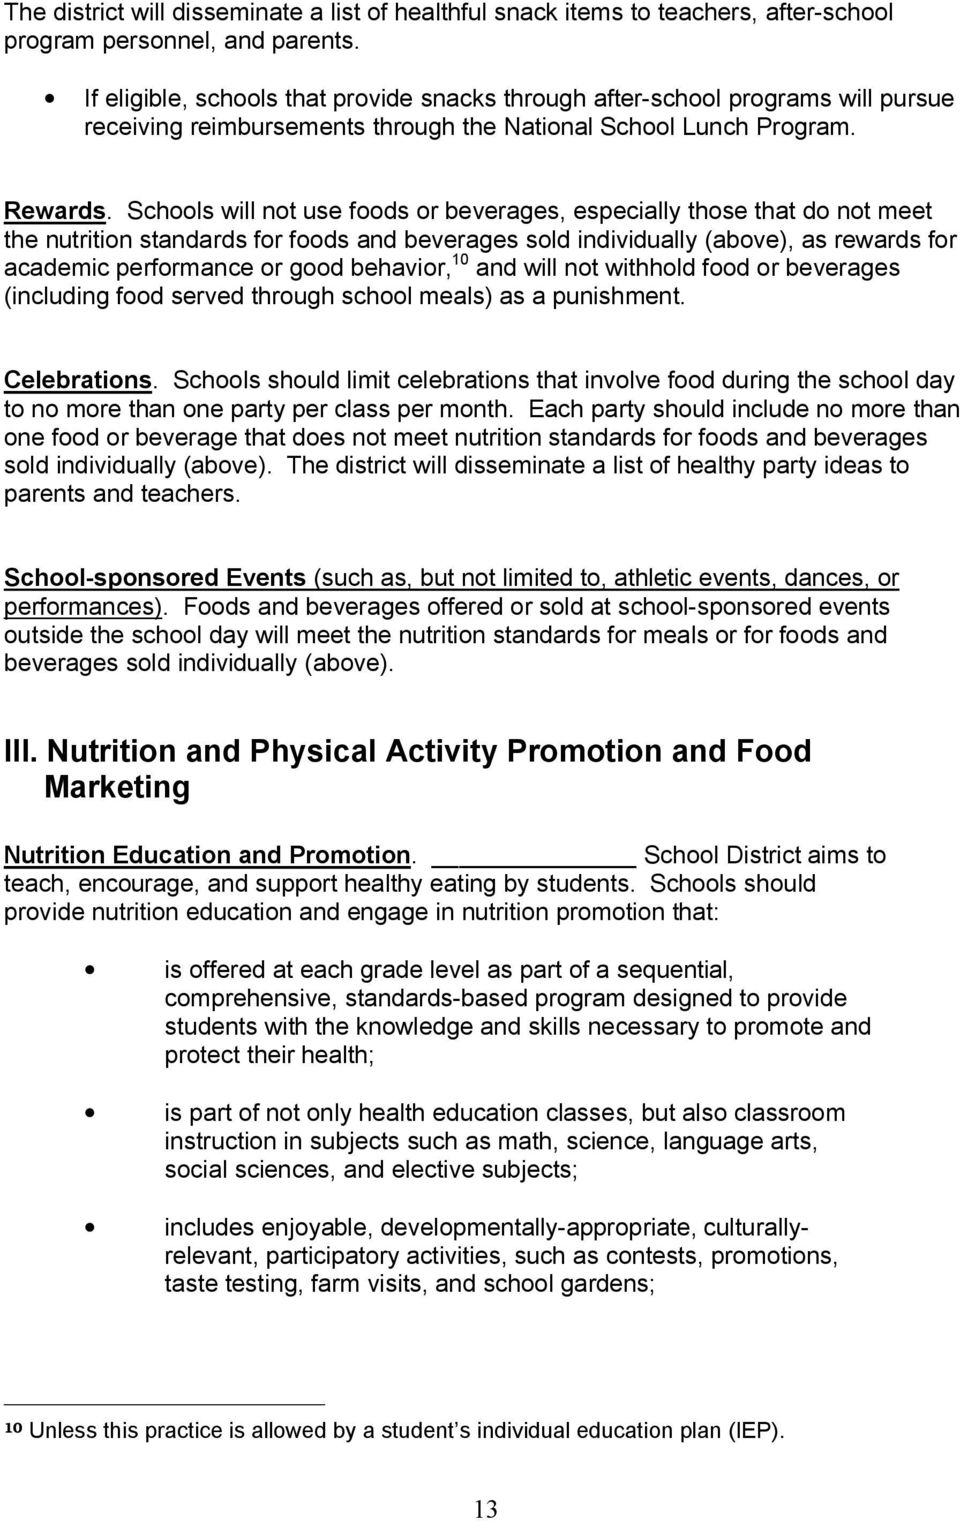 Schools will not use foods or beverages, especially those that do not meet the nutrition standards for foods and beverages sold individually (above), as rewards for academic performance or good